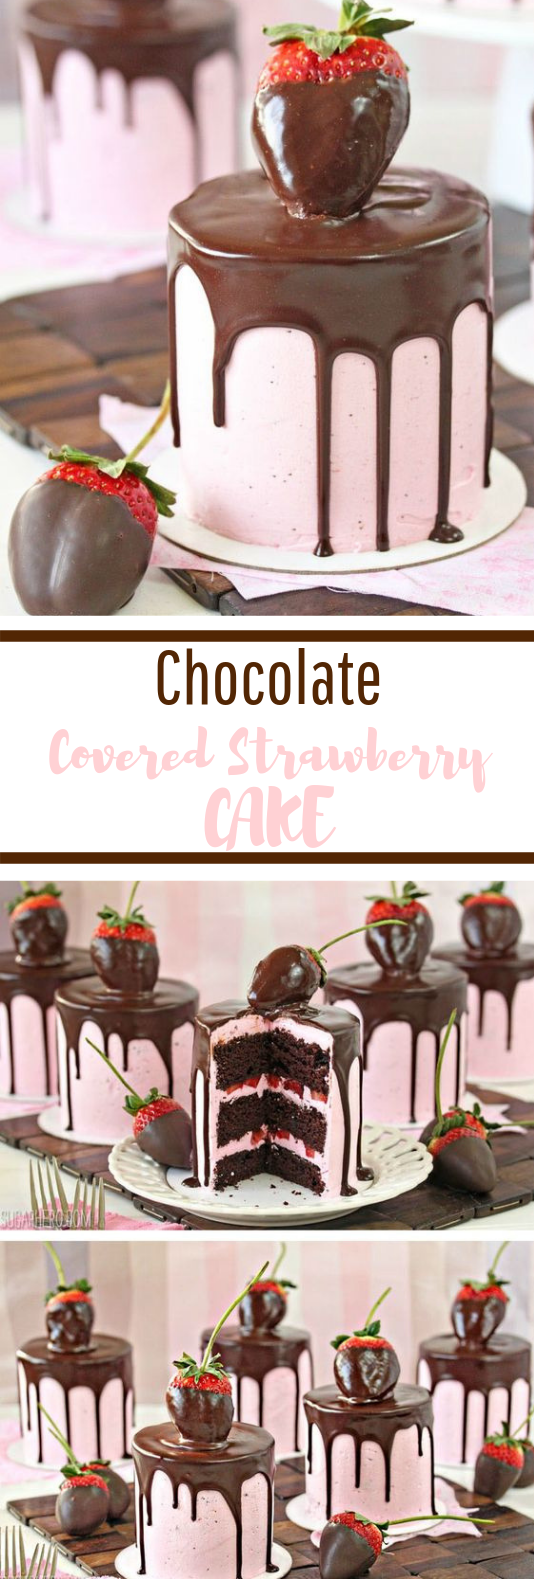 Chocolate-Covered Strawberry Cakes #dessert #sweettreat